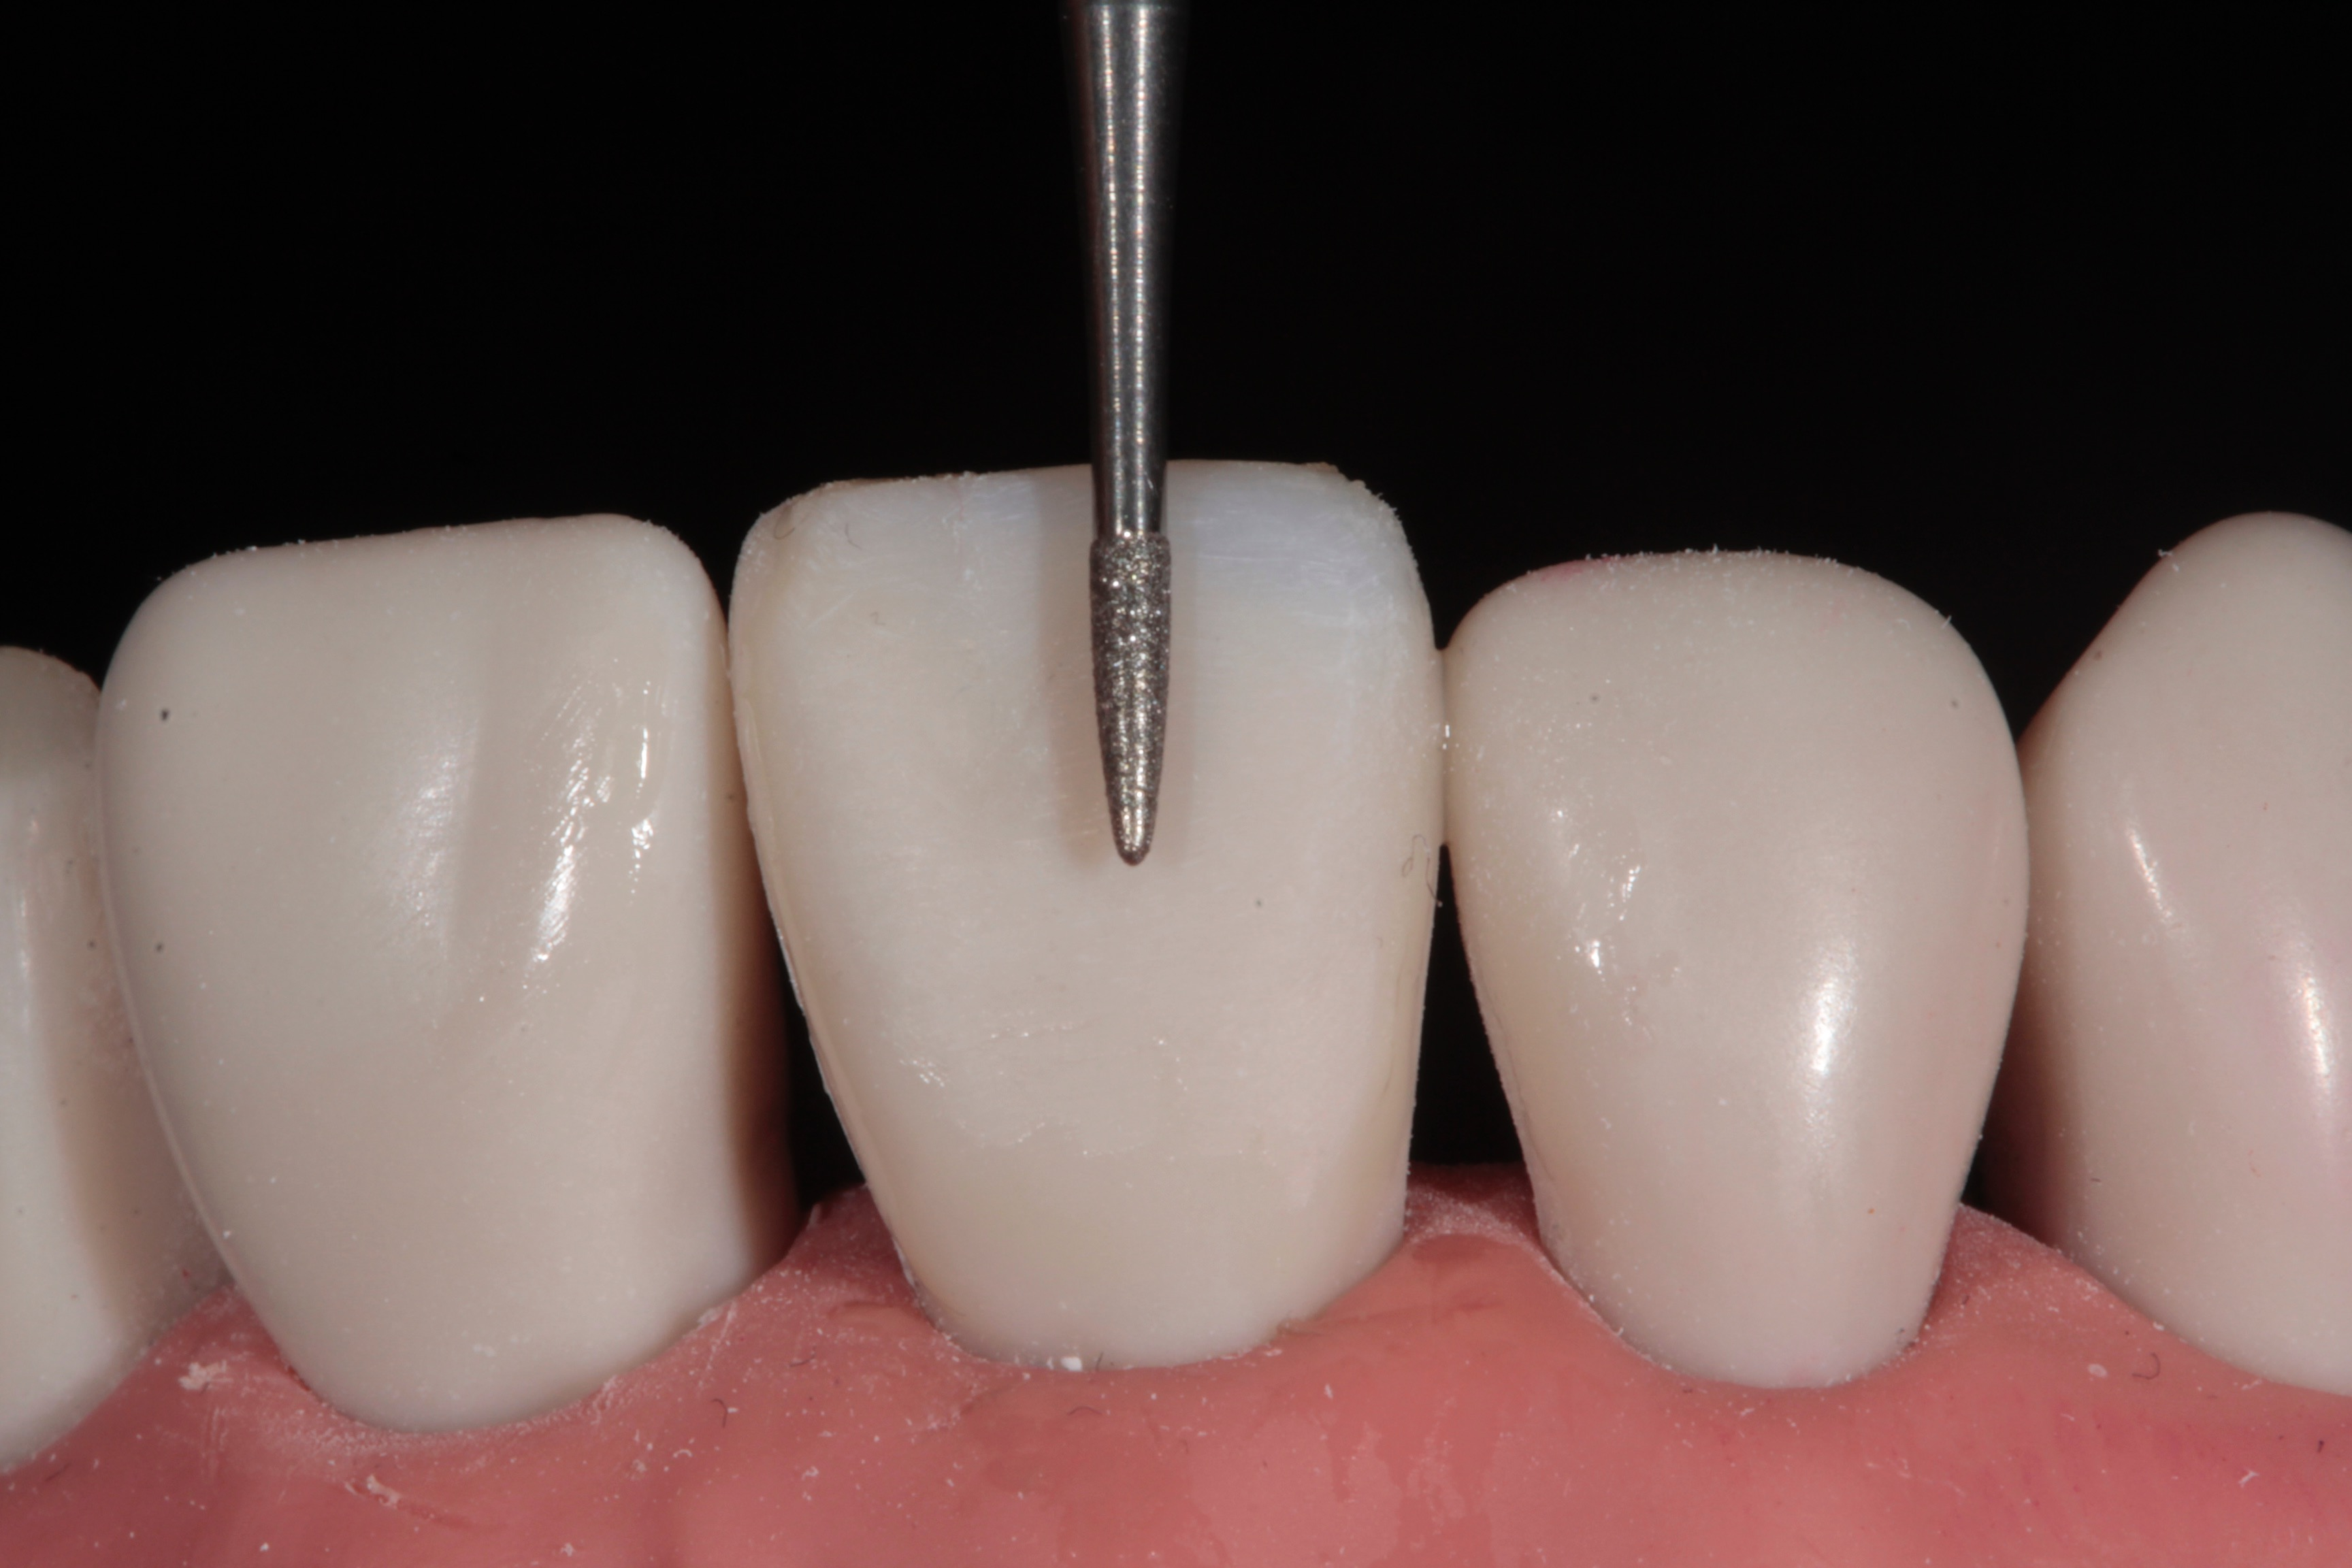 Tif Qureshi - Ortho restorative - case 2.4